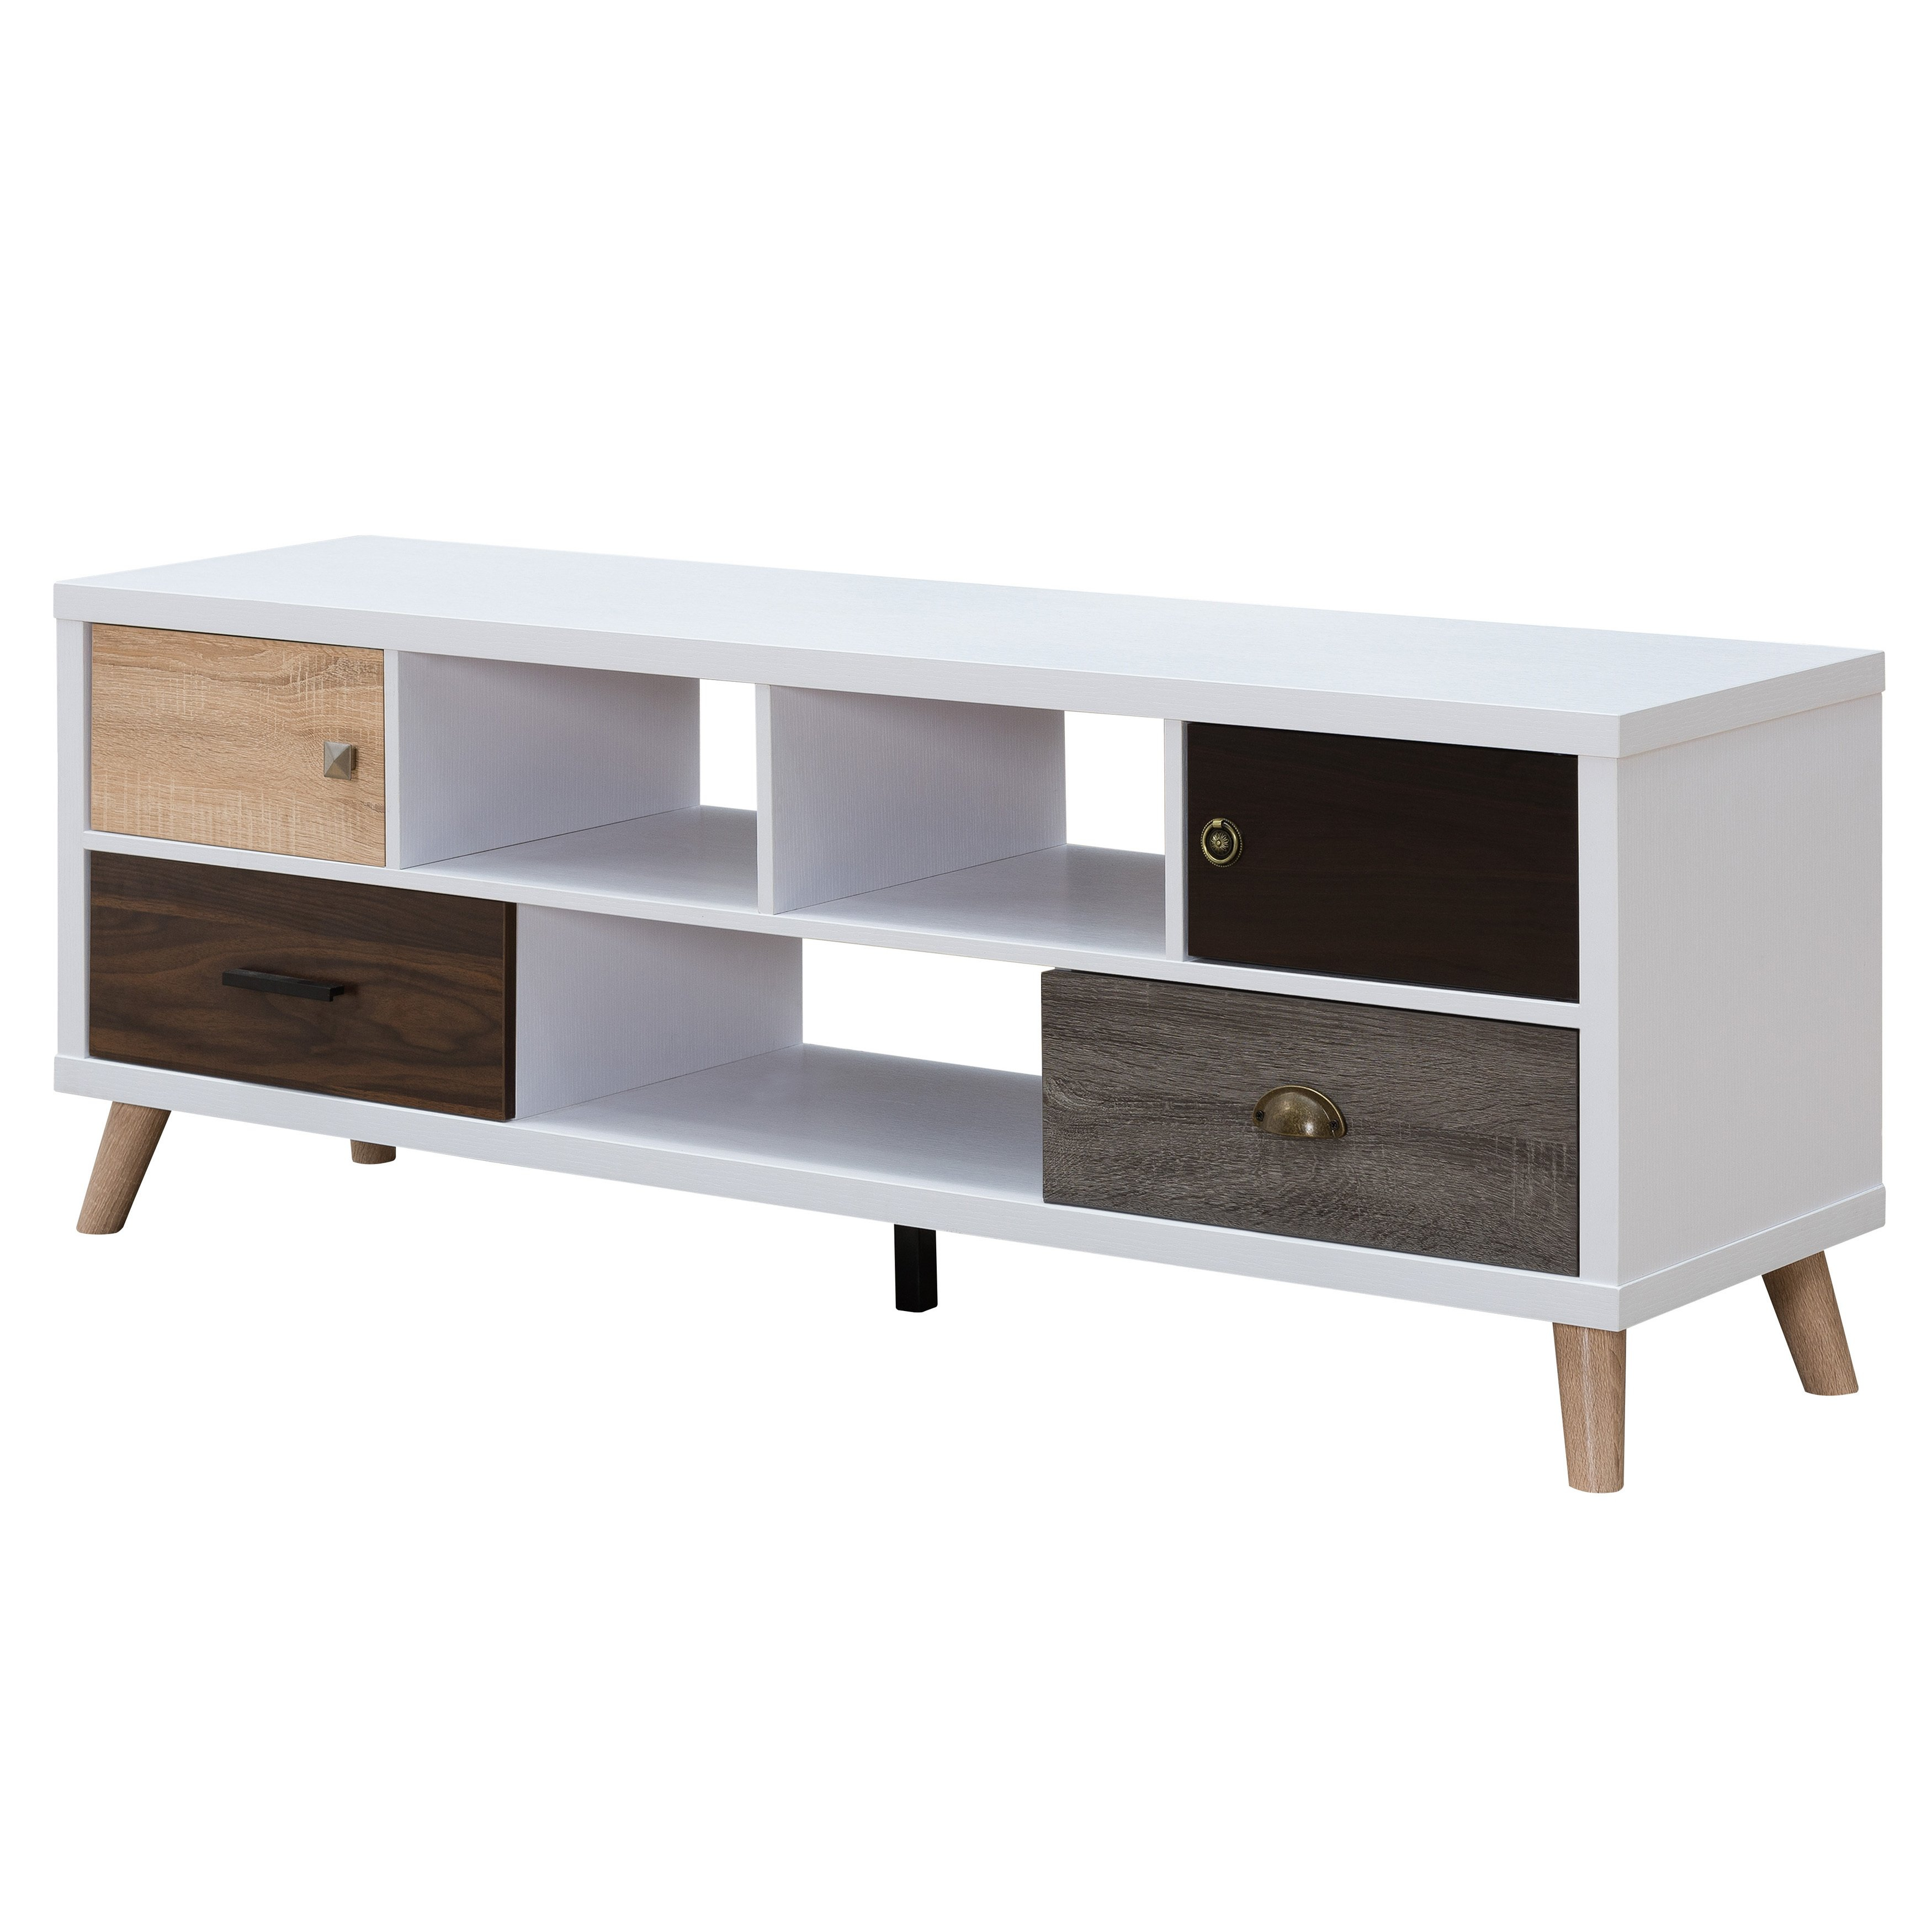 Shop Furniture Of America Kristen Mid Century Modern Multicolored With Regard To Casey Grey 74 Inch Tv Stands (View 16 of 30)